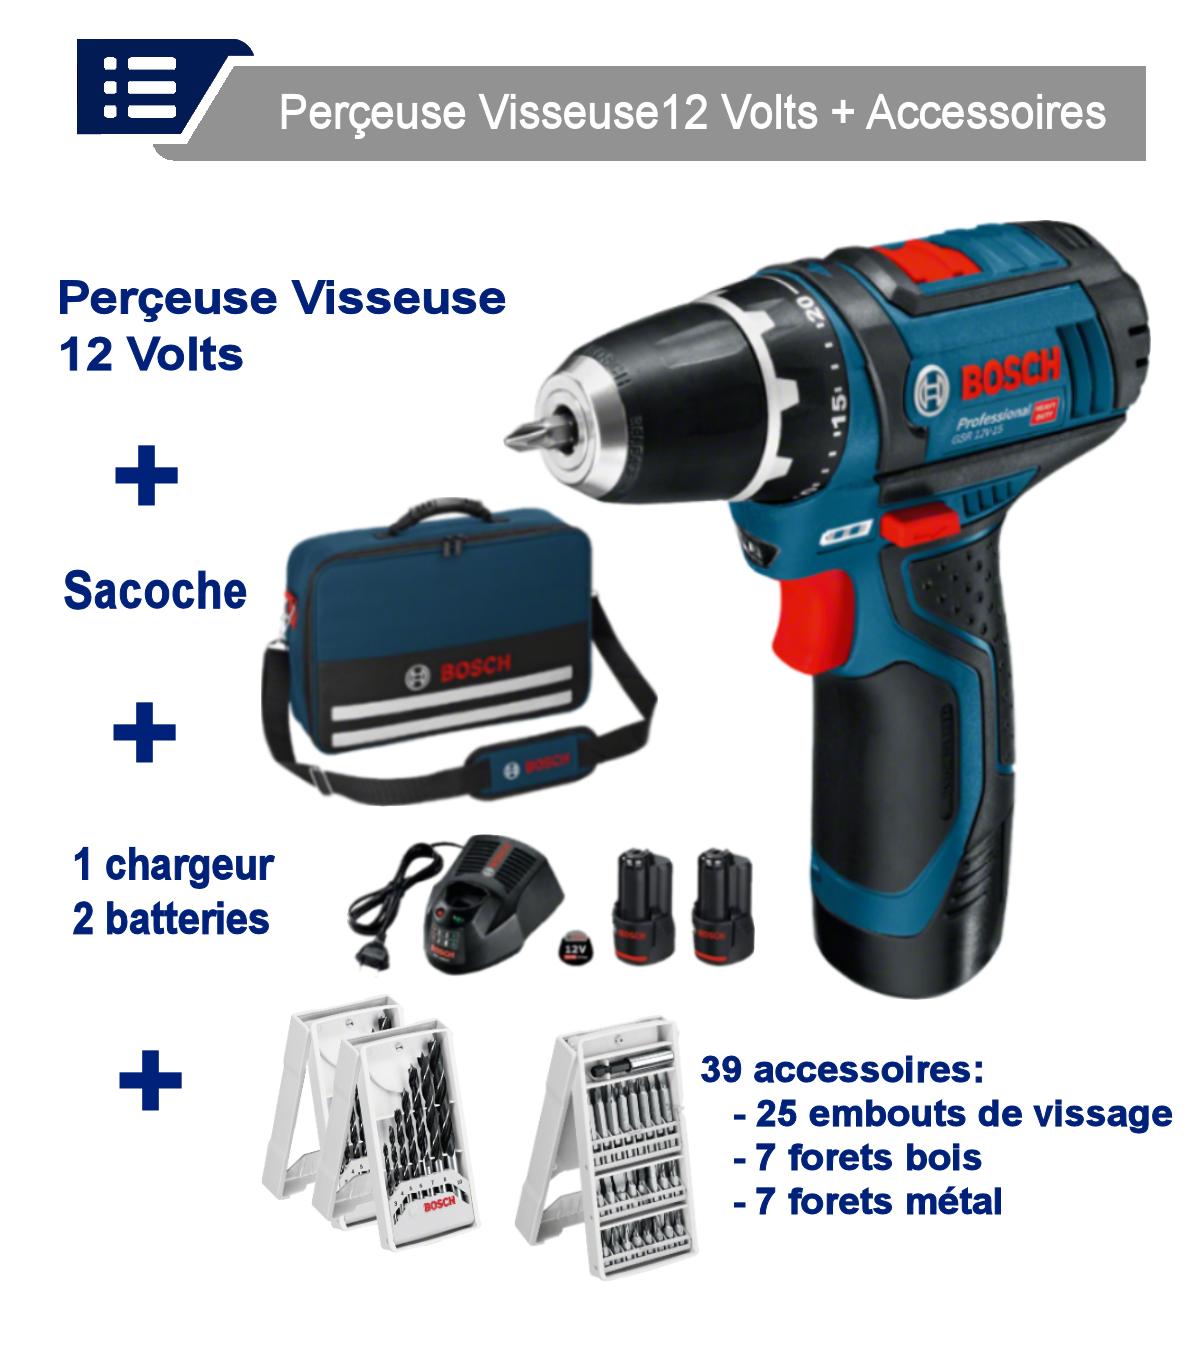 Perceuse gsr 12v-15